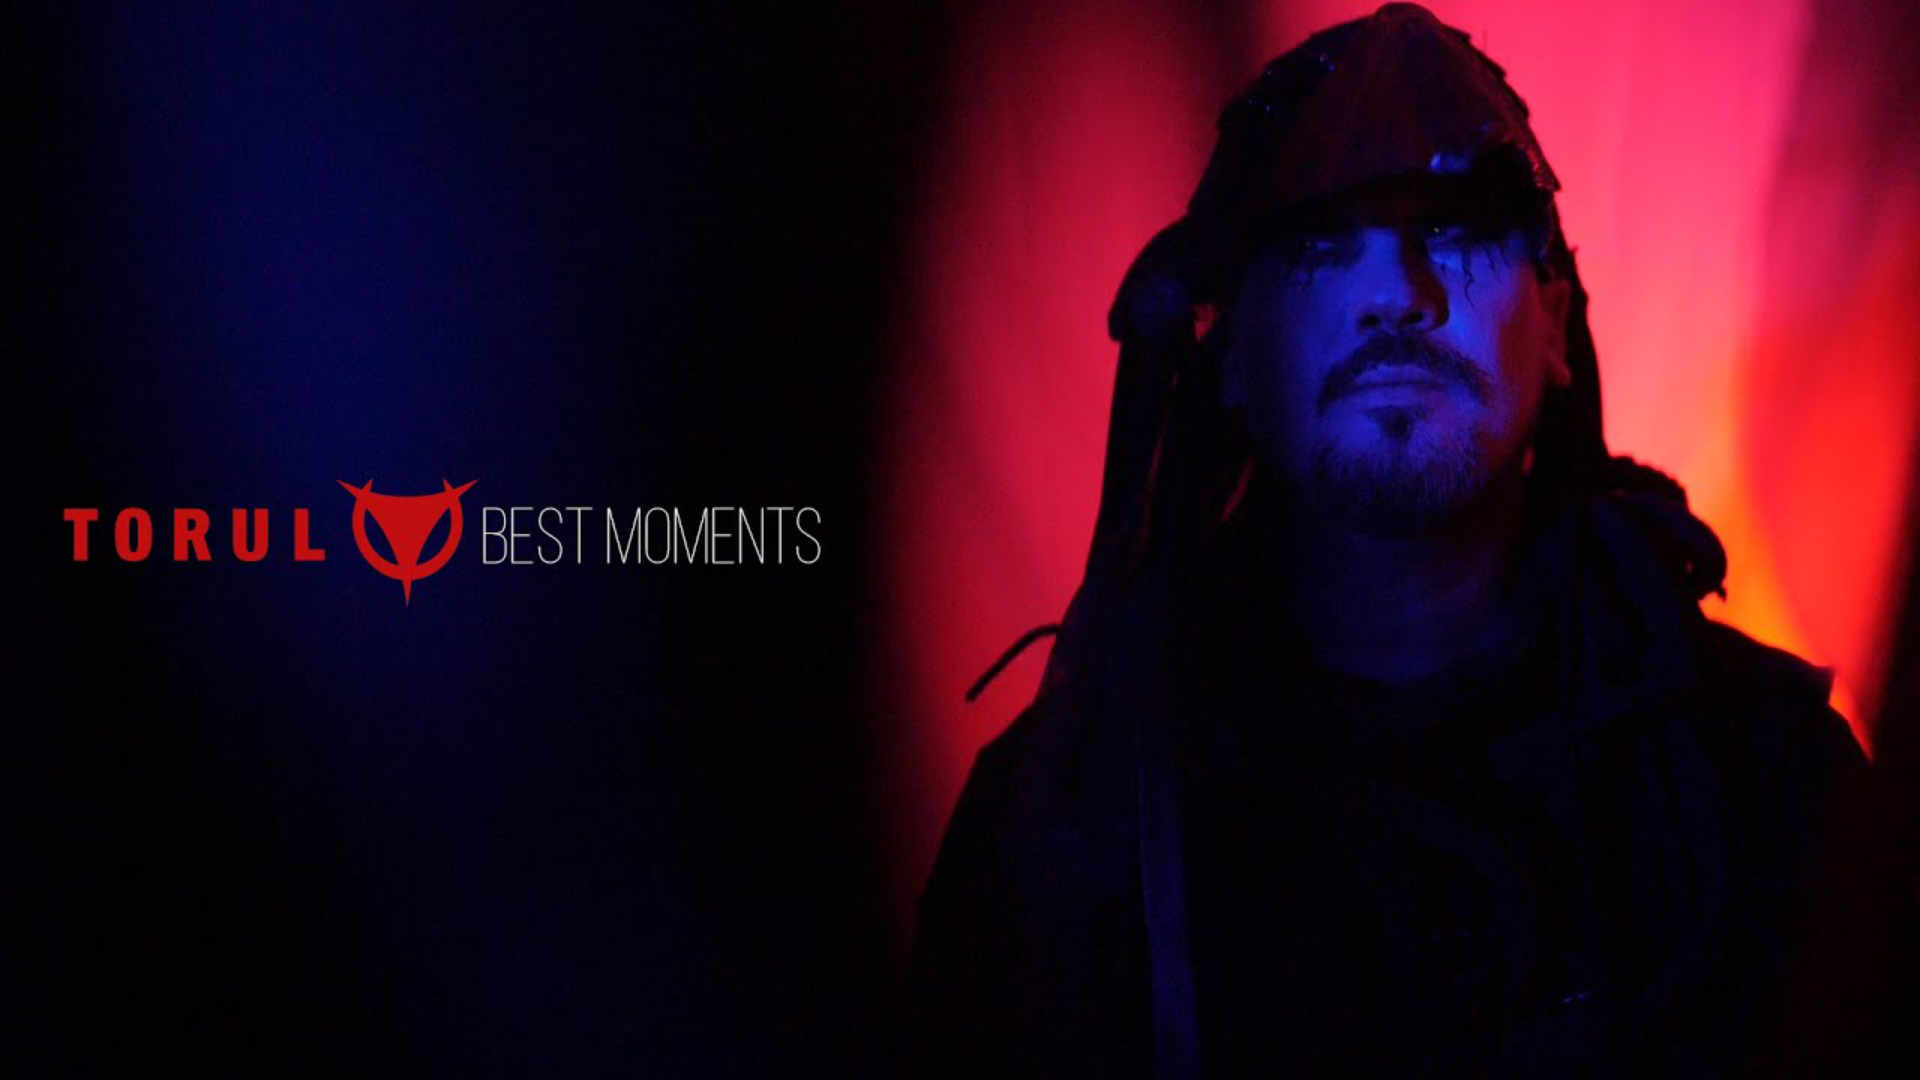 Torul - Best Moments